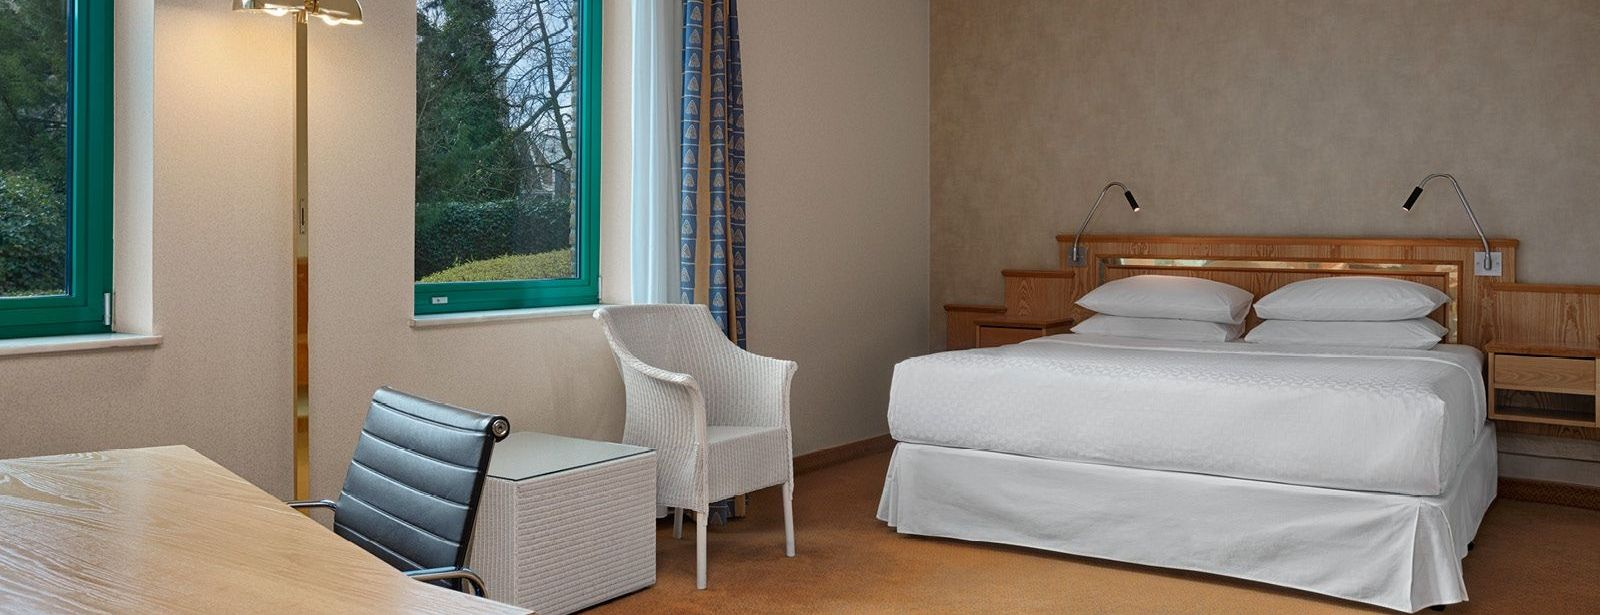 Superior Garden Room, free internet included | Four Points by Sheraton Brussels